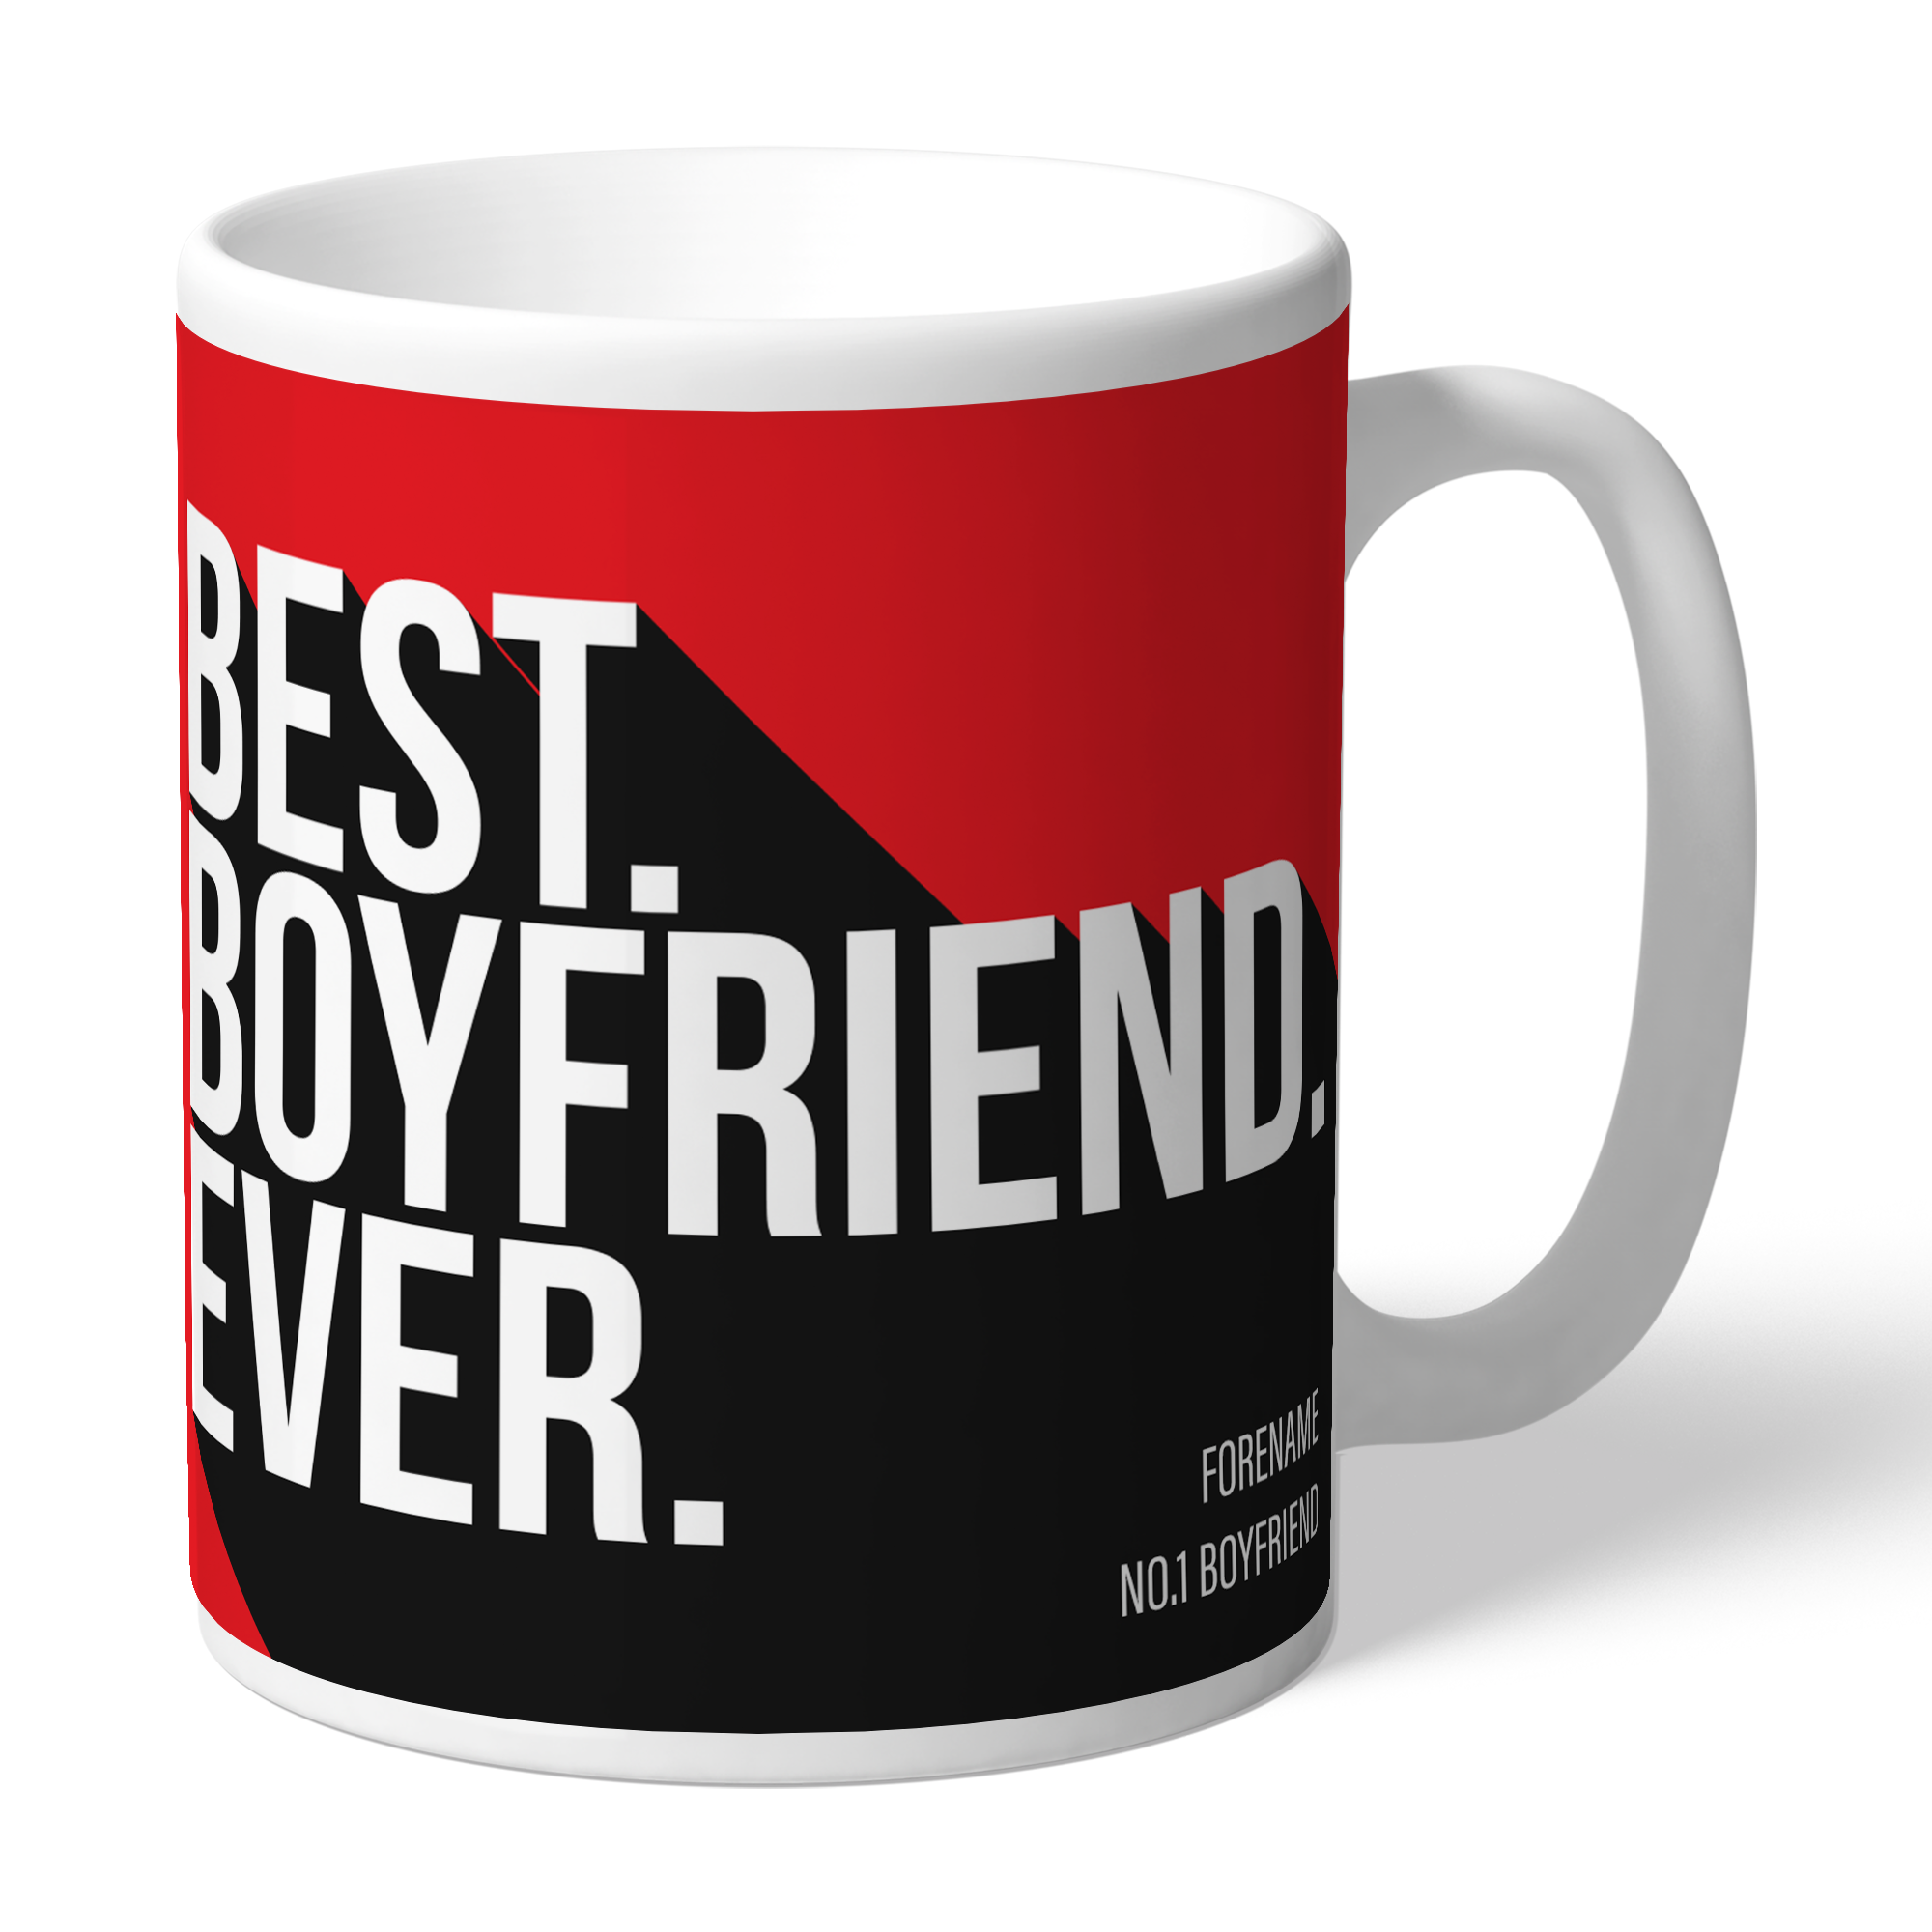 Sunderland Best Boyfriend Ever Mug